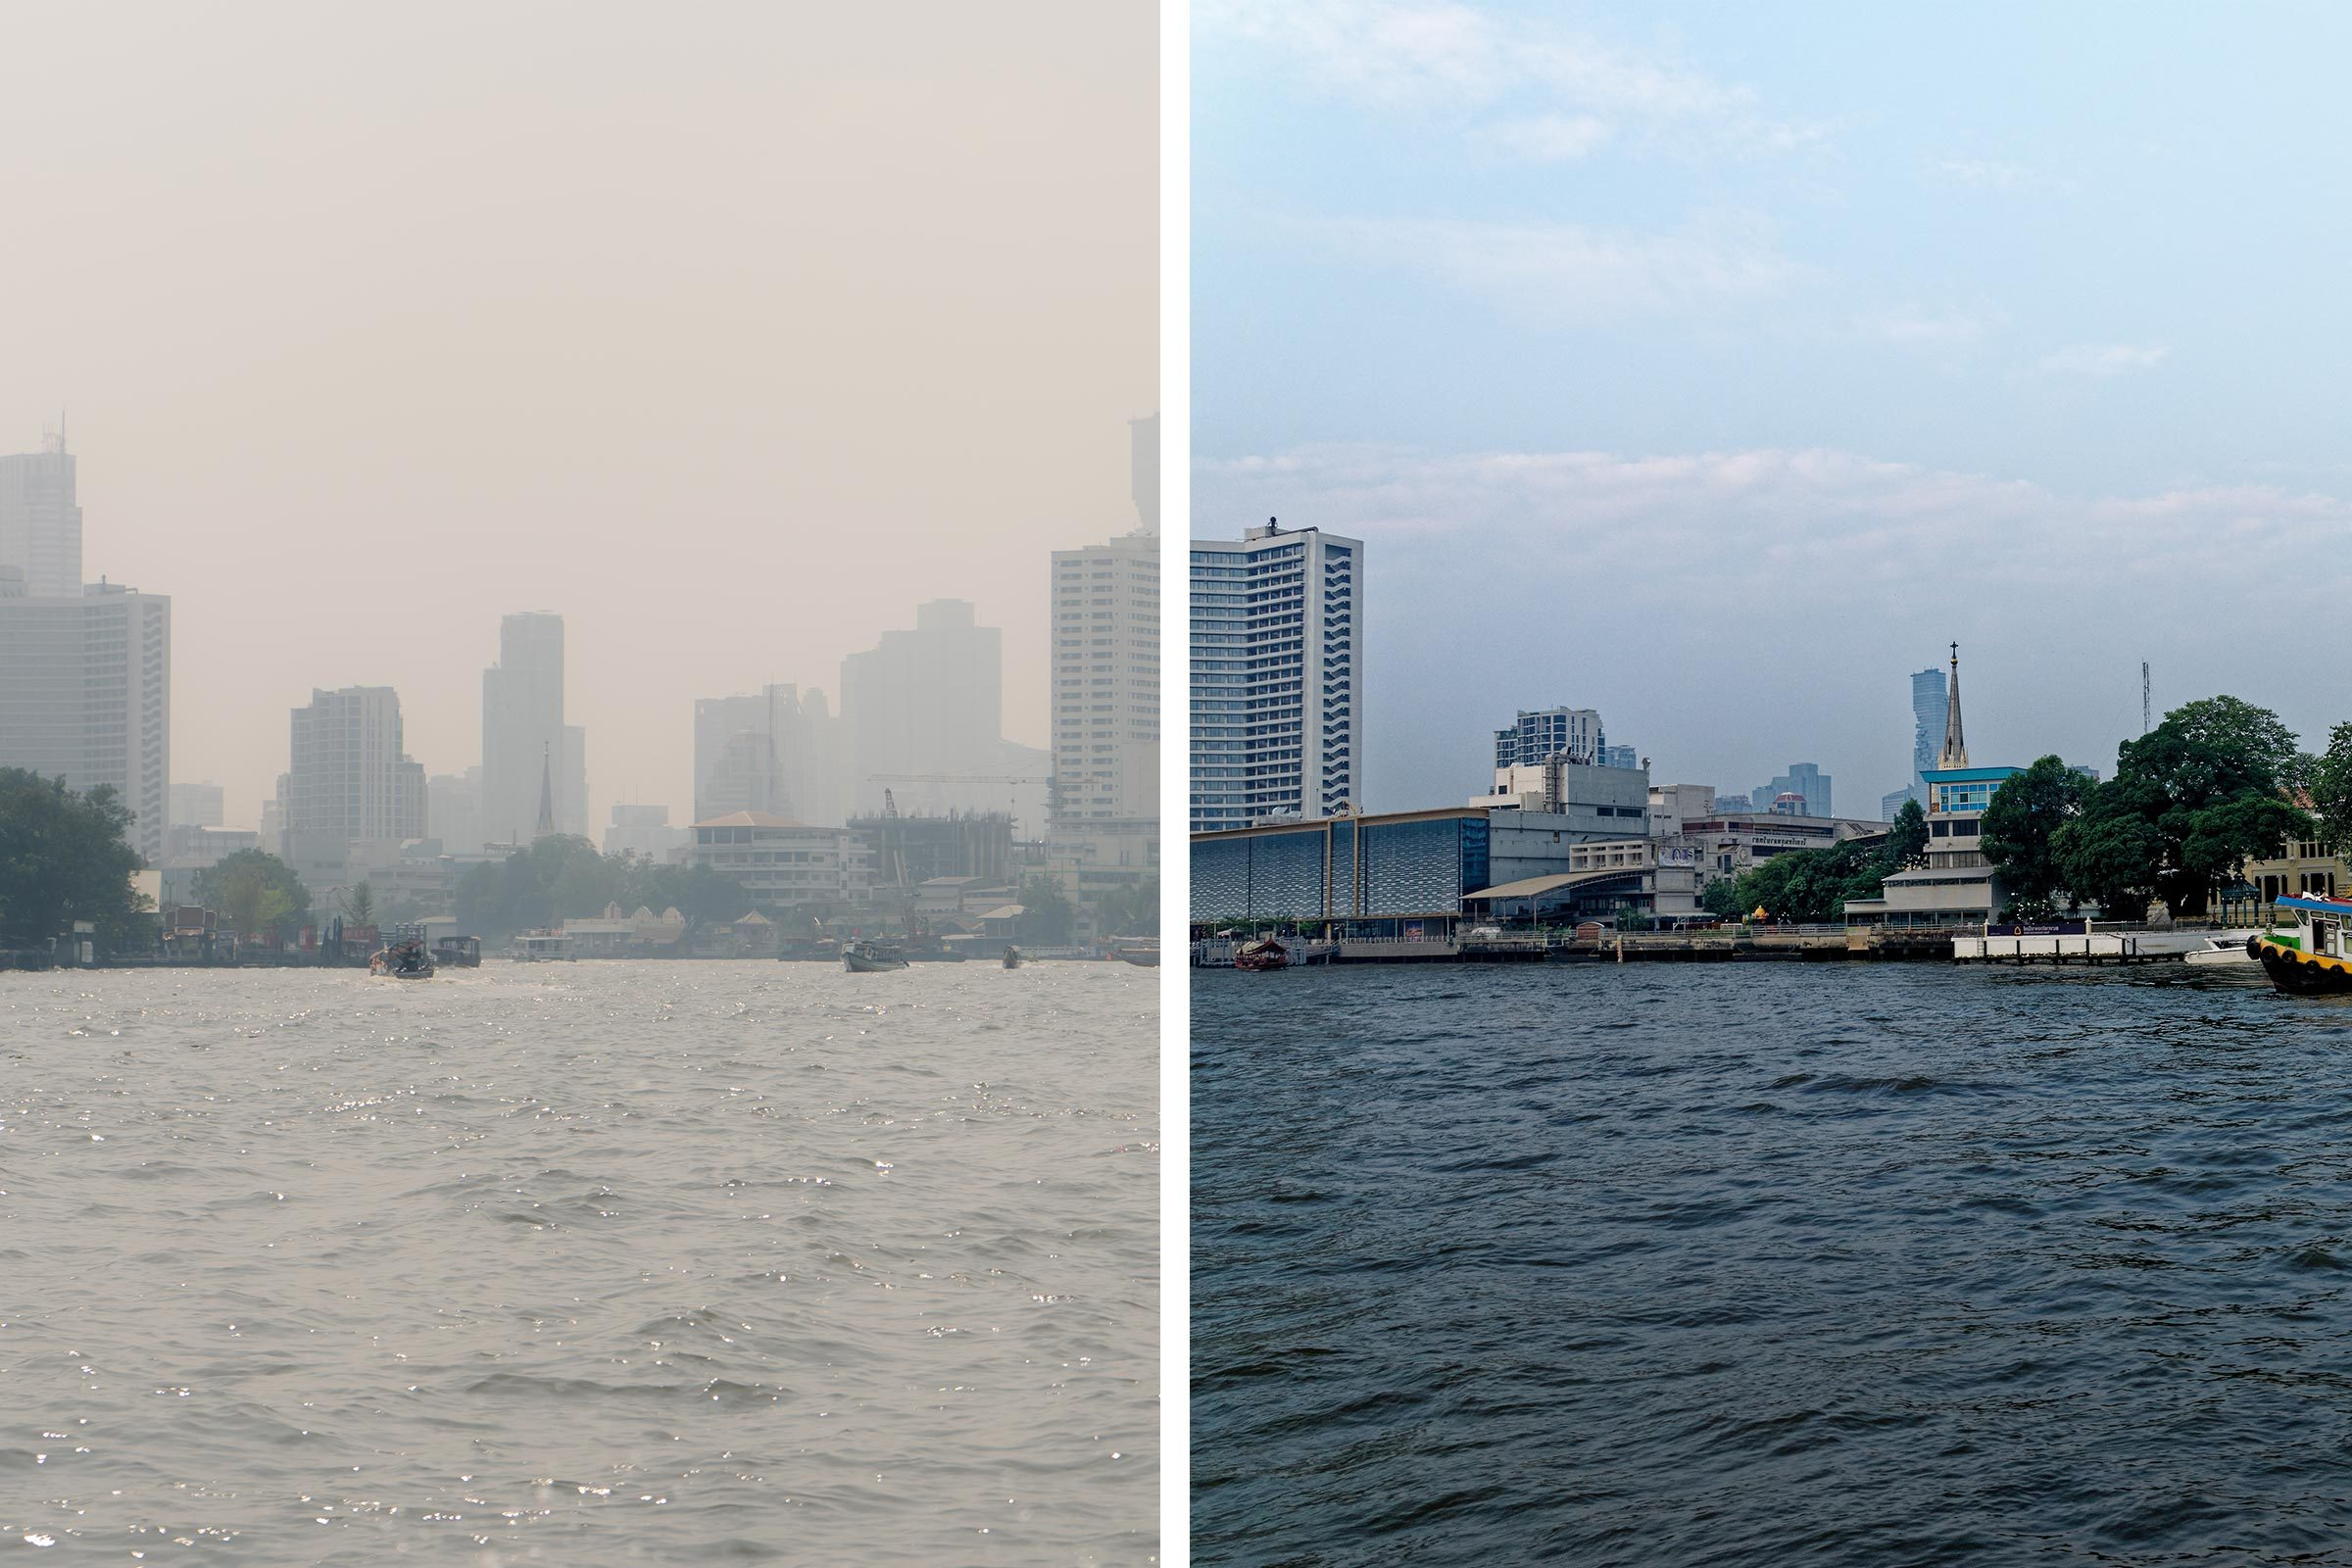 Before/After Bangkok